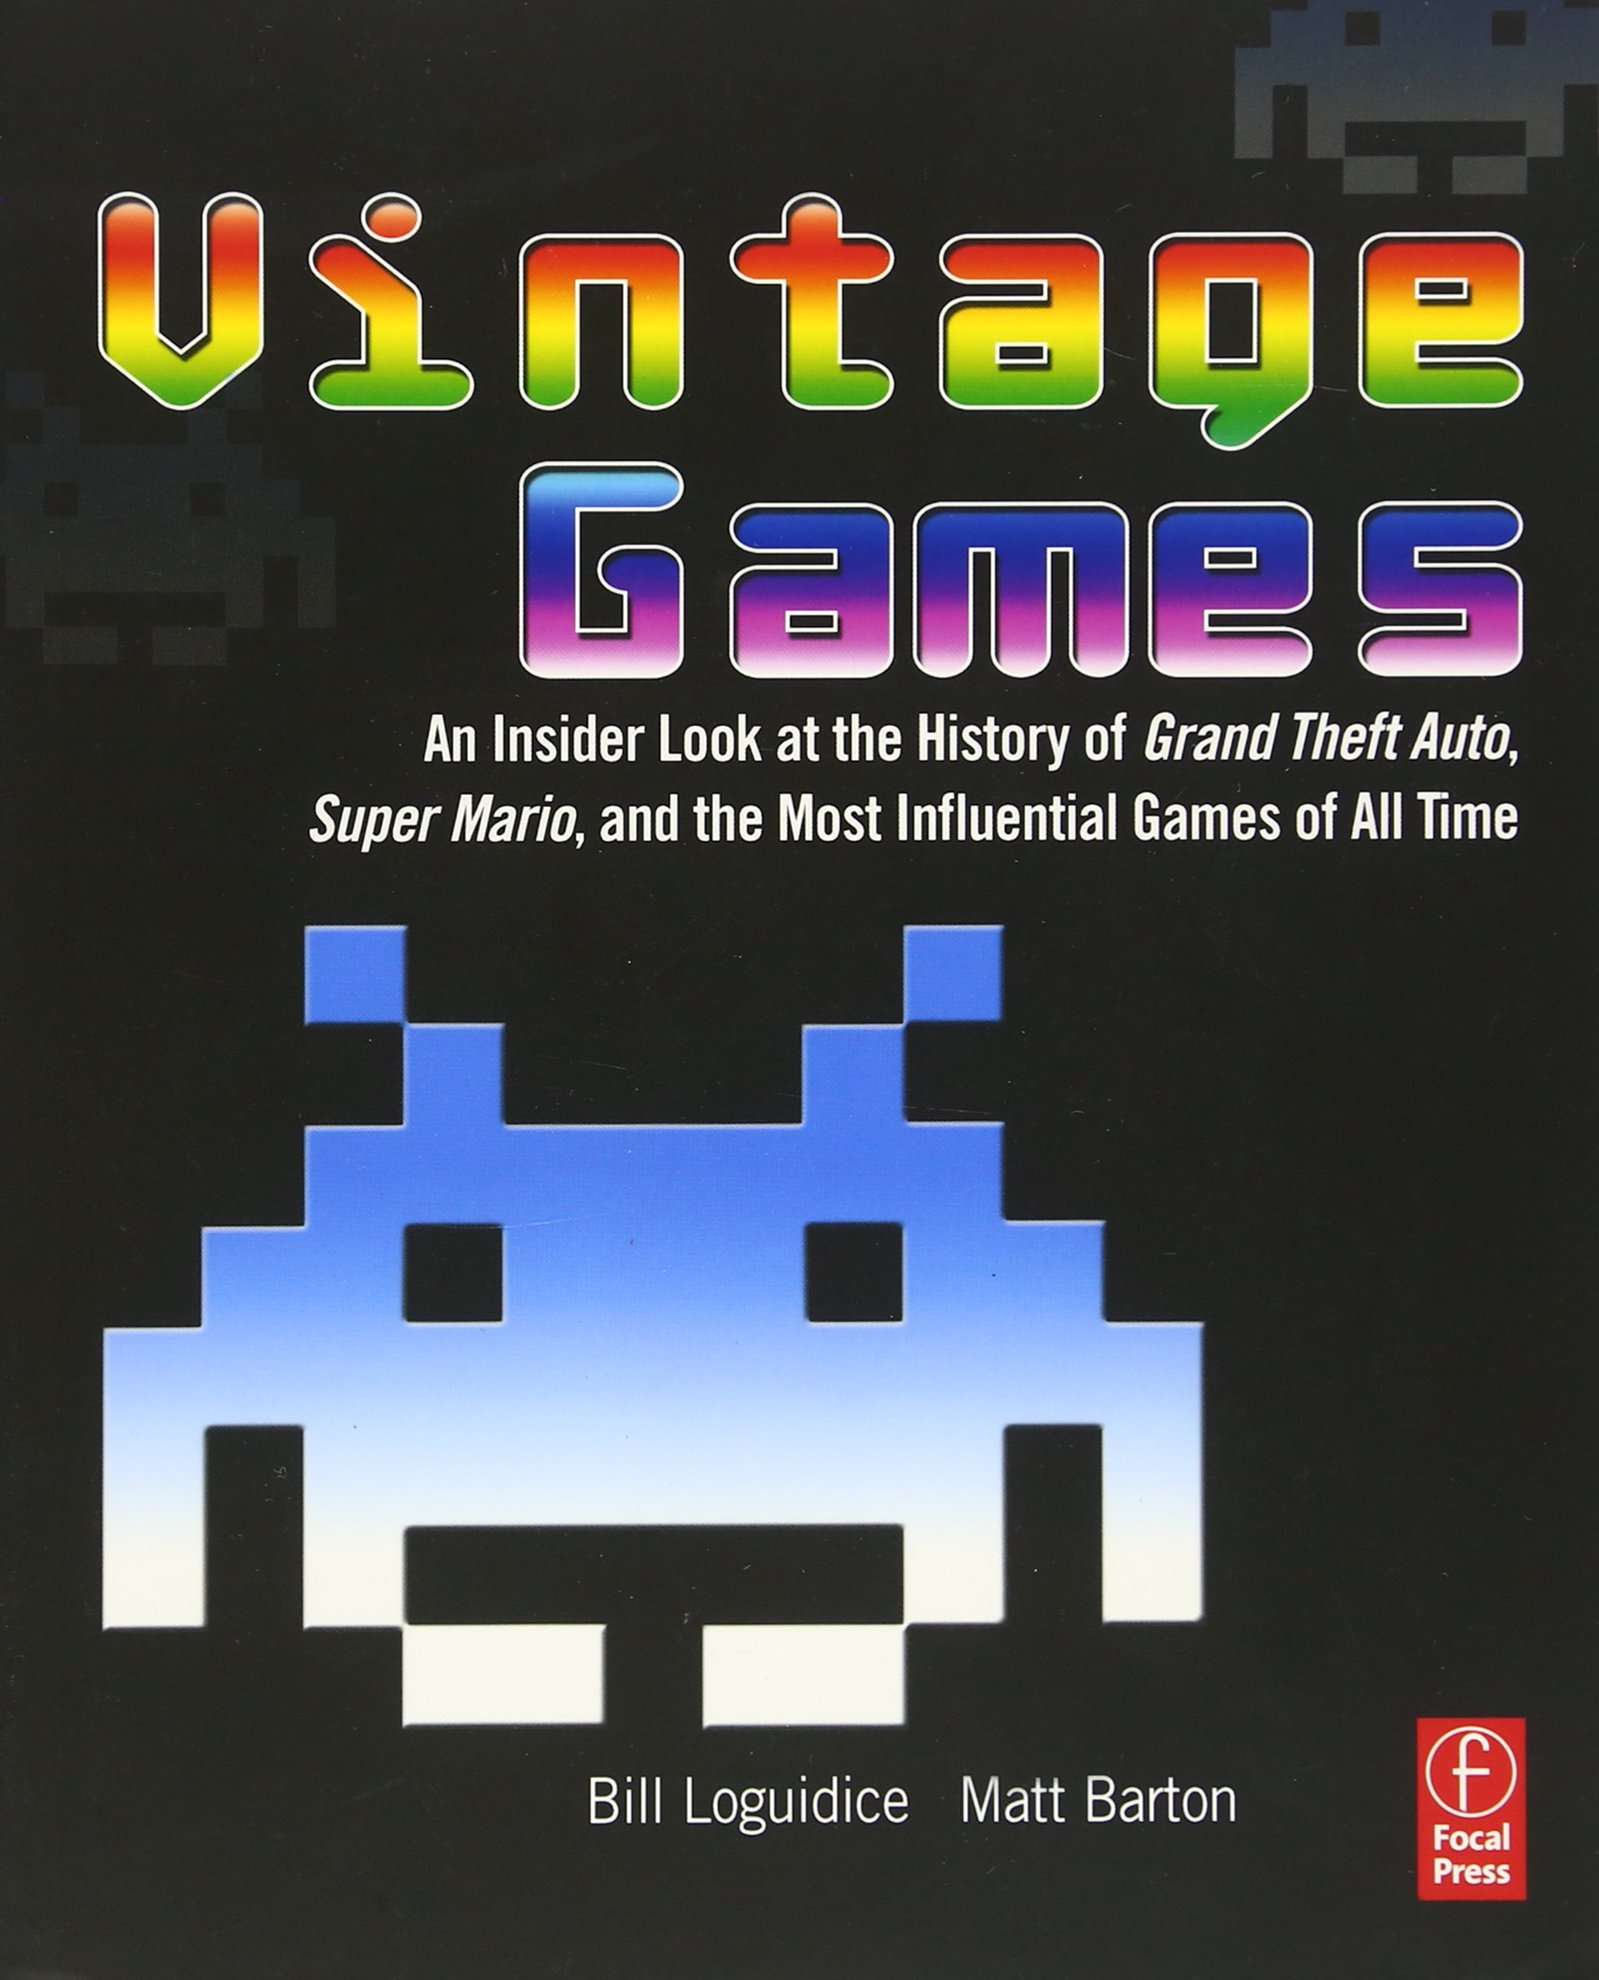 Vintage Games: An Insider Look at the History of Grand Theft Auto, Super Mario, and the Most Influential Games of All Time: Amazon.es: Bill Loguidice, ...